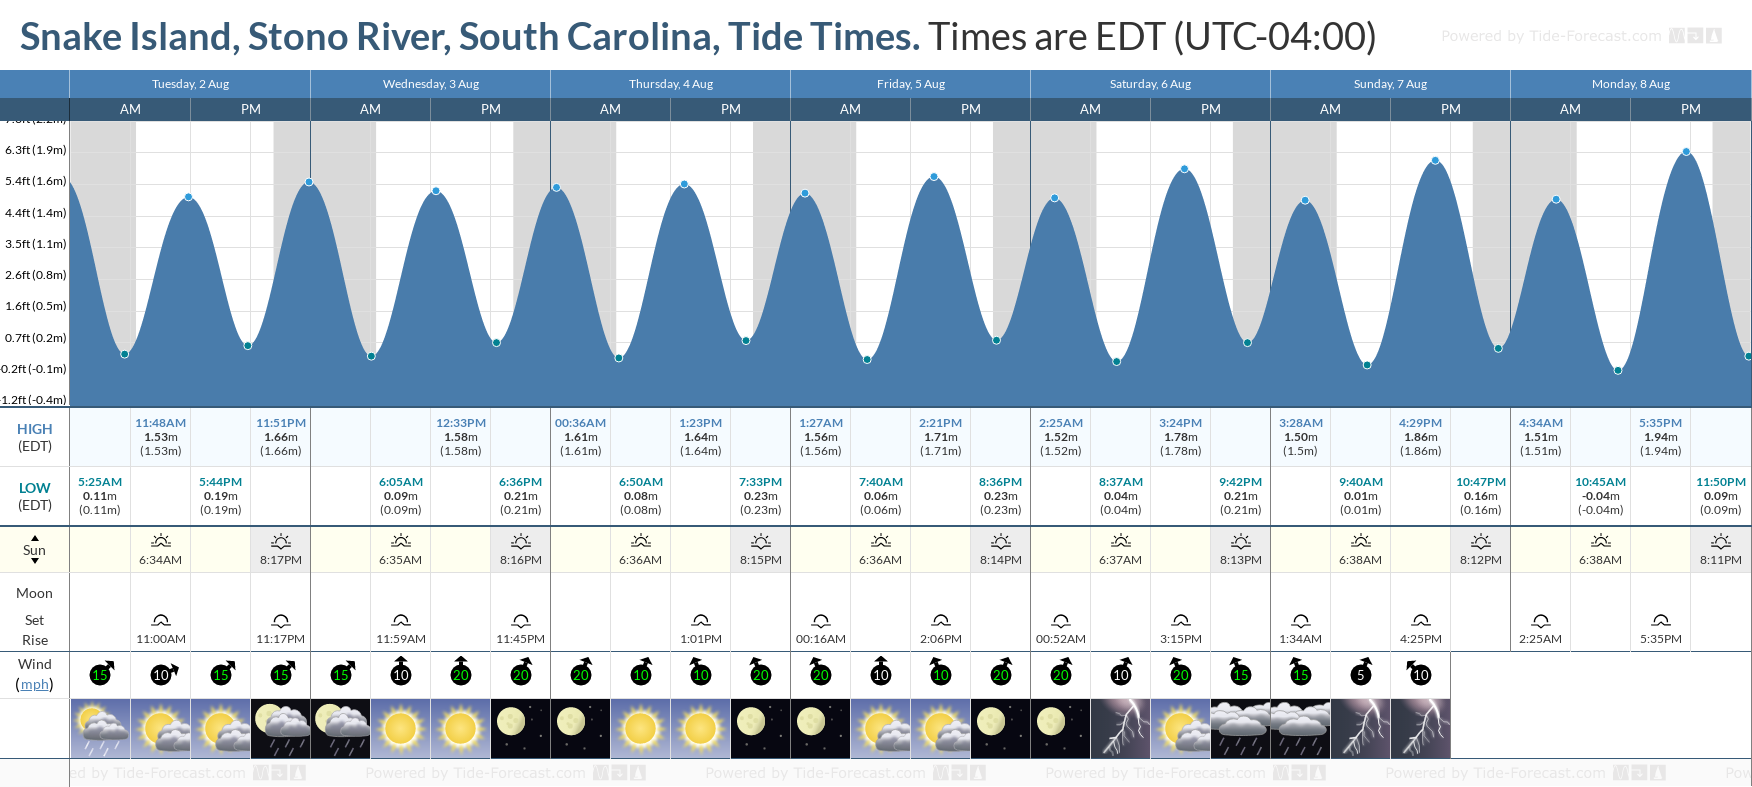 Snake Island, Stono River, South Carolina Tide Chart including high and low tide tide times for the next 7 days